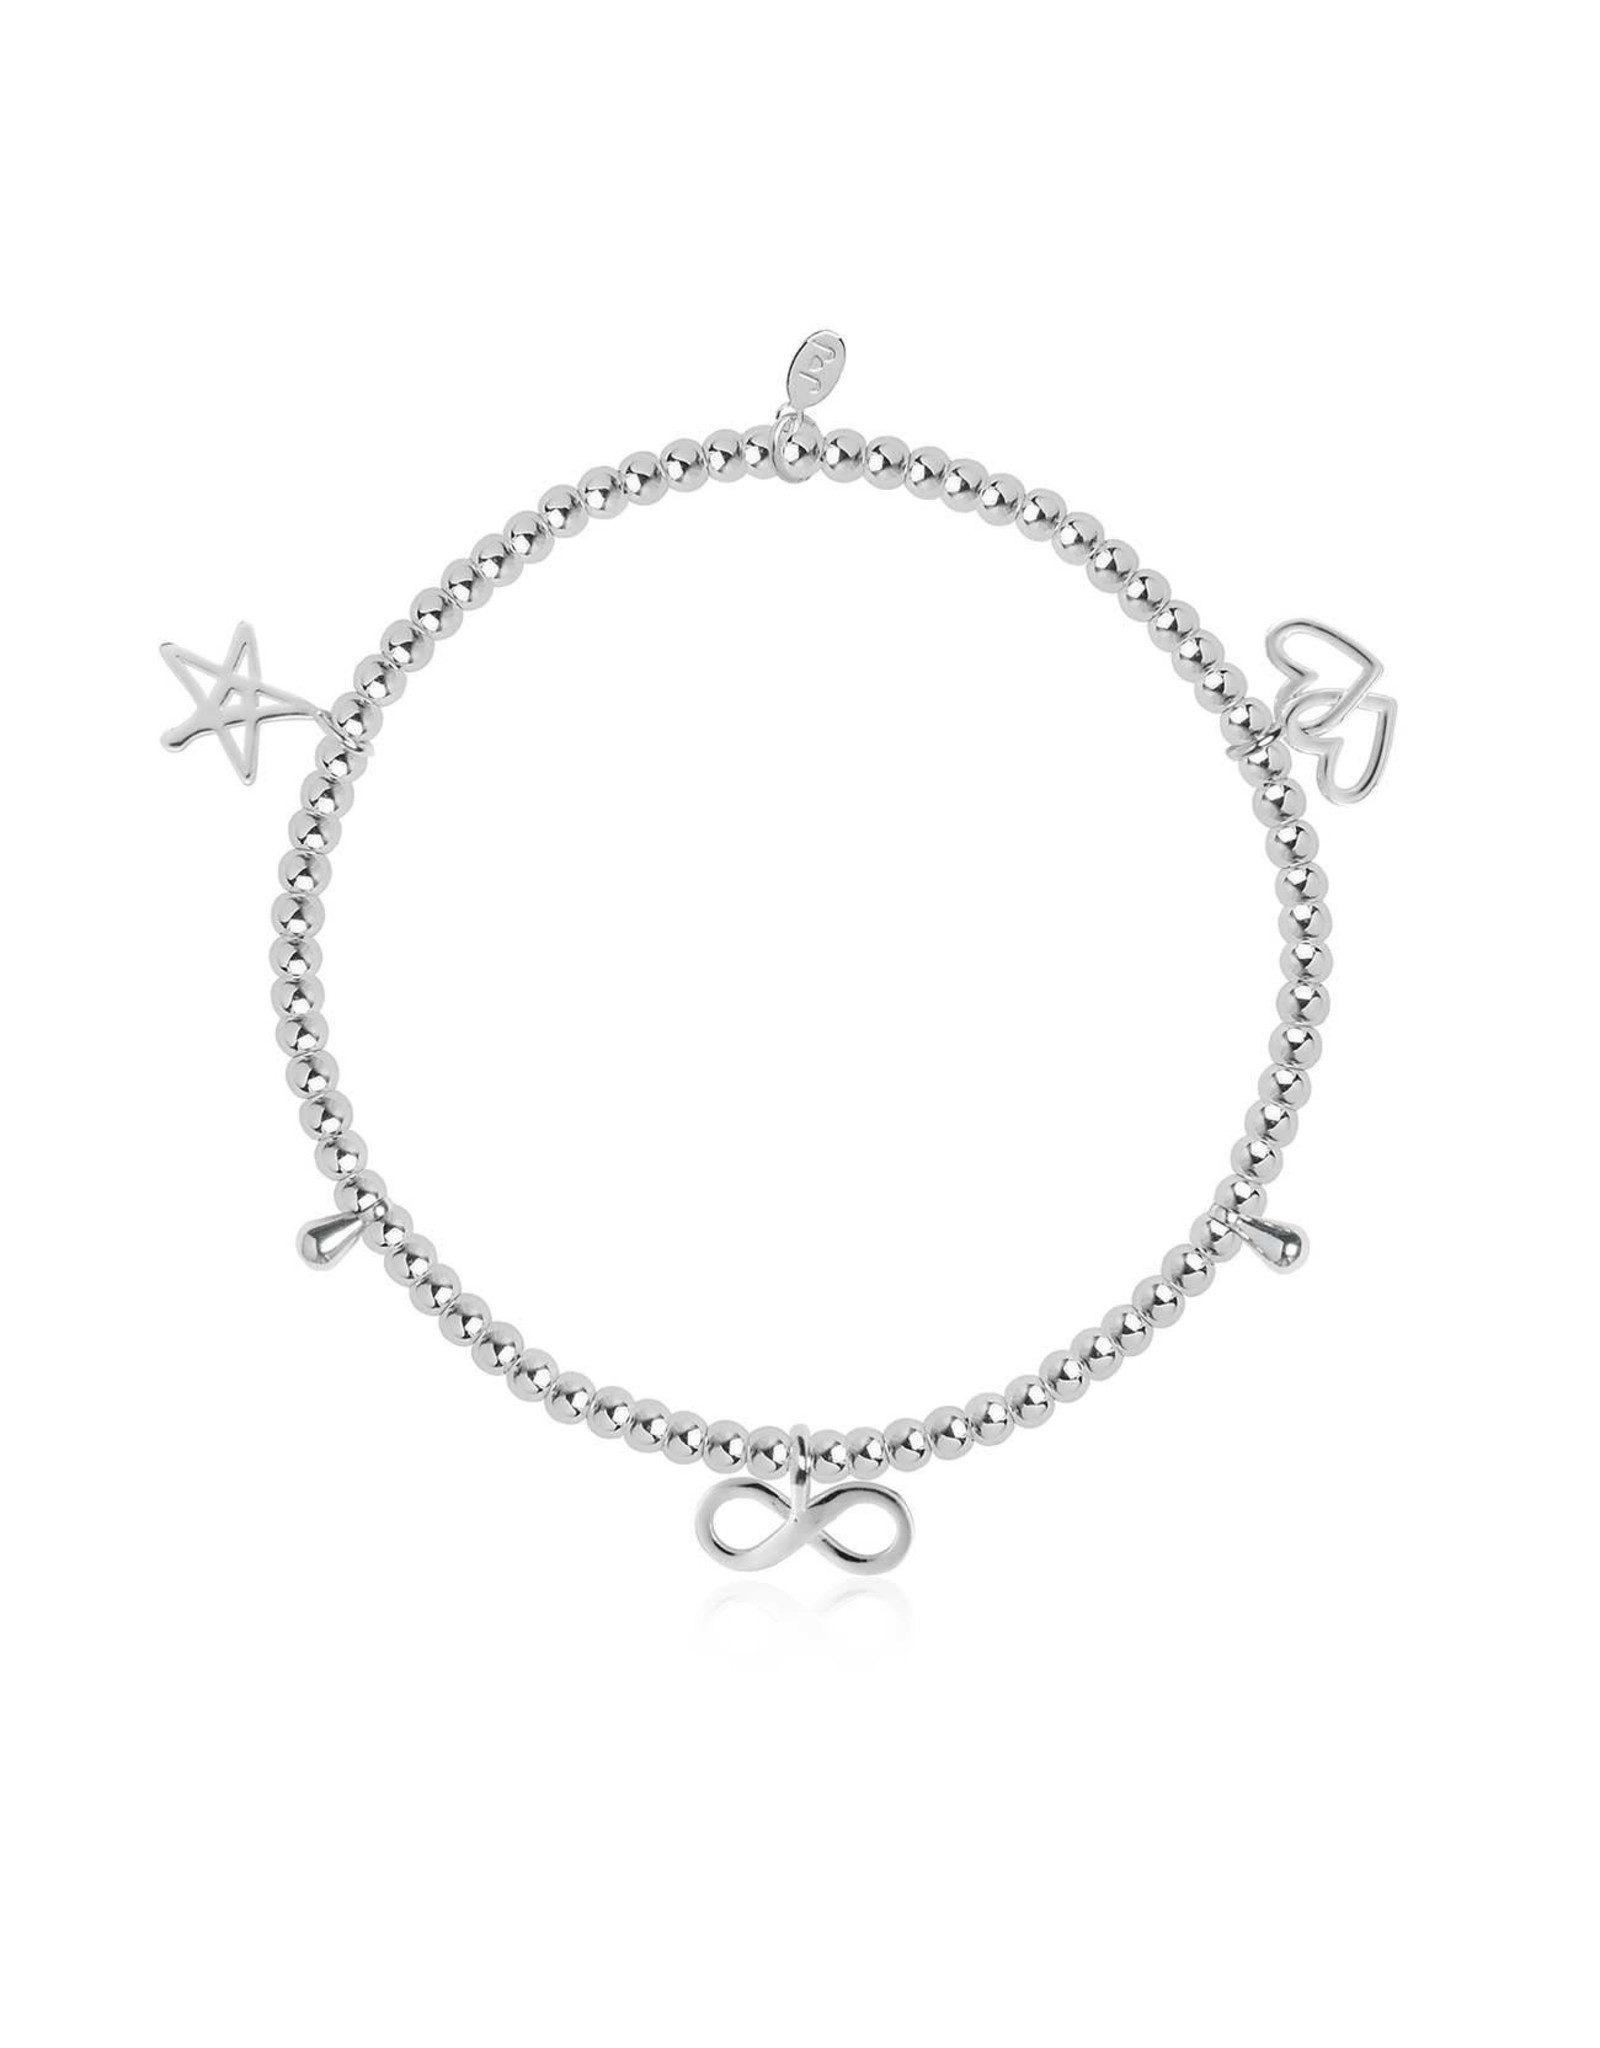 Joma Jewellery Life's a Charm - Forever Friends